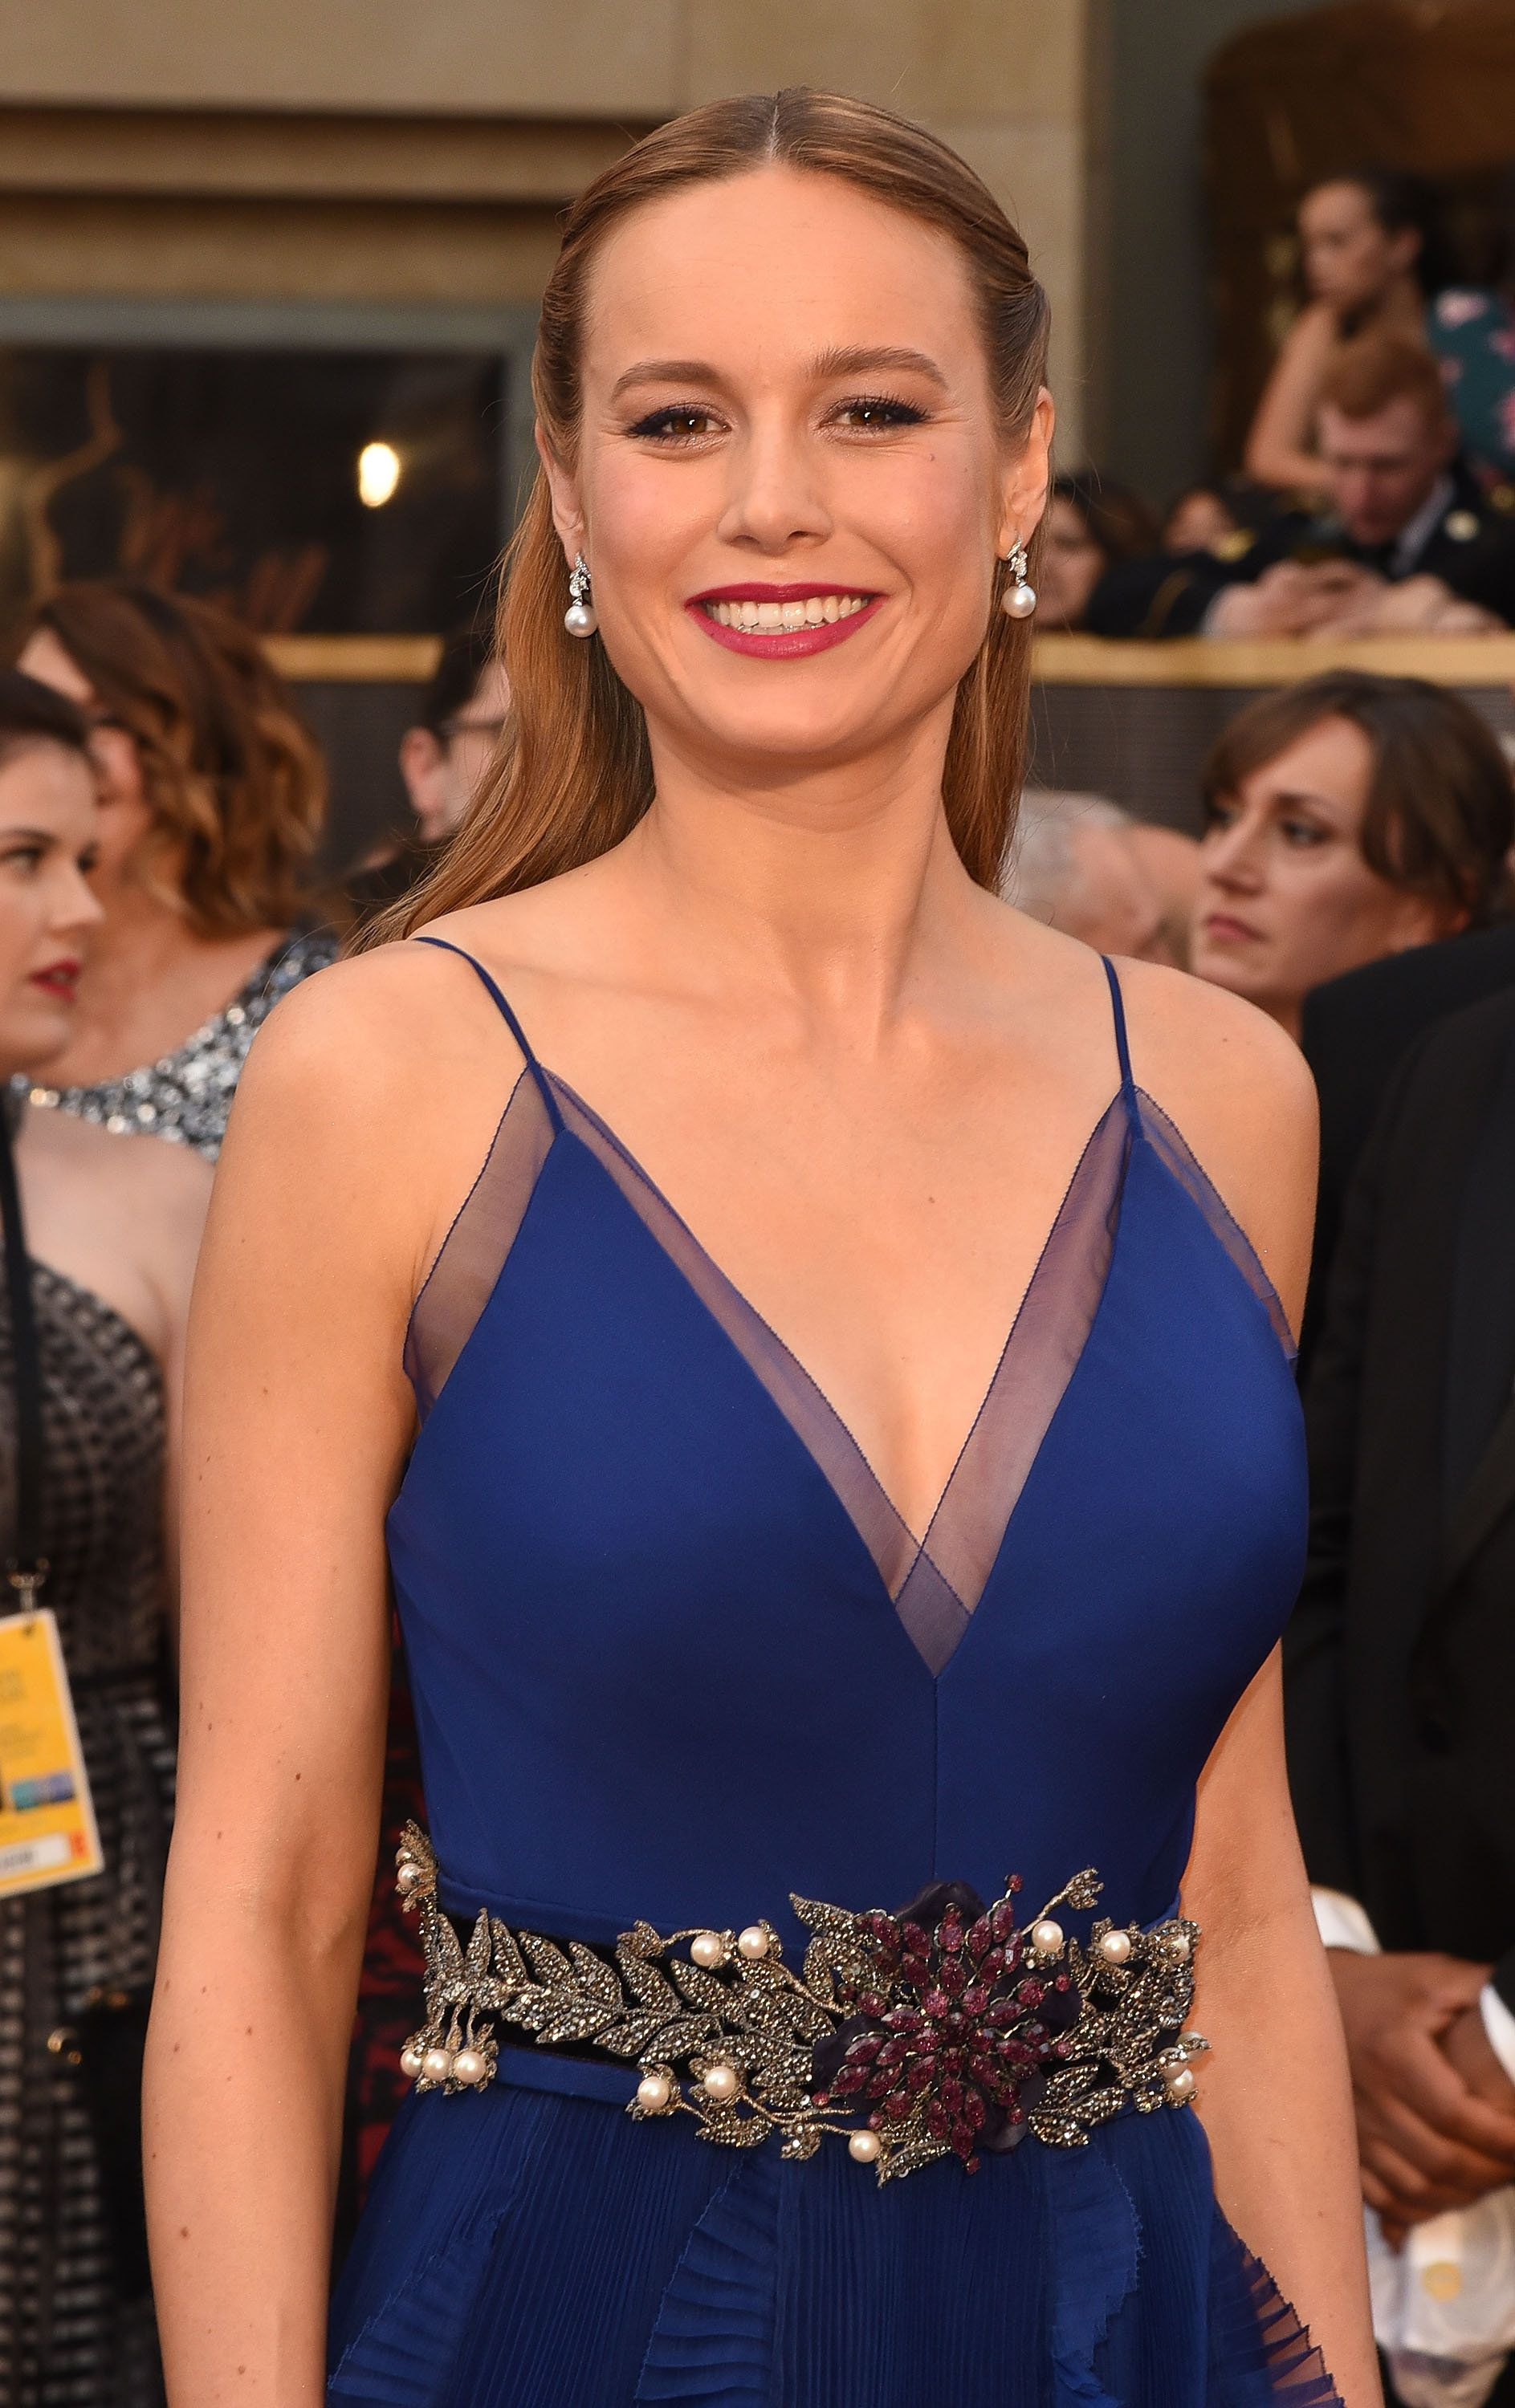 HOLLYWOOD, CA - FEBRUARY 28:  Actress Brie Larson attends the 88th Annual Academy Awards at Hollywood & Highland Center on February 28, 2016 in Hollywood, California.  (Photo by C Flanigan/FilmMagic)